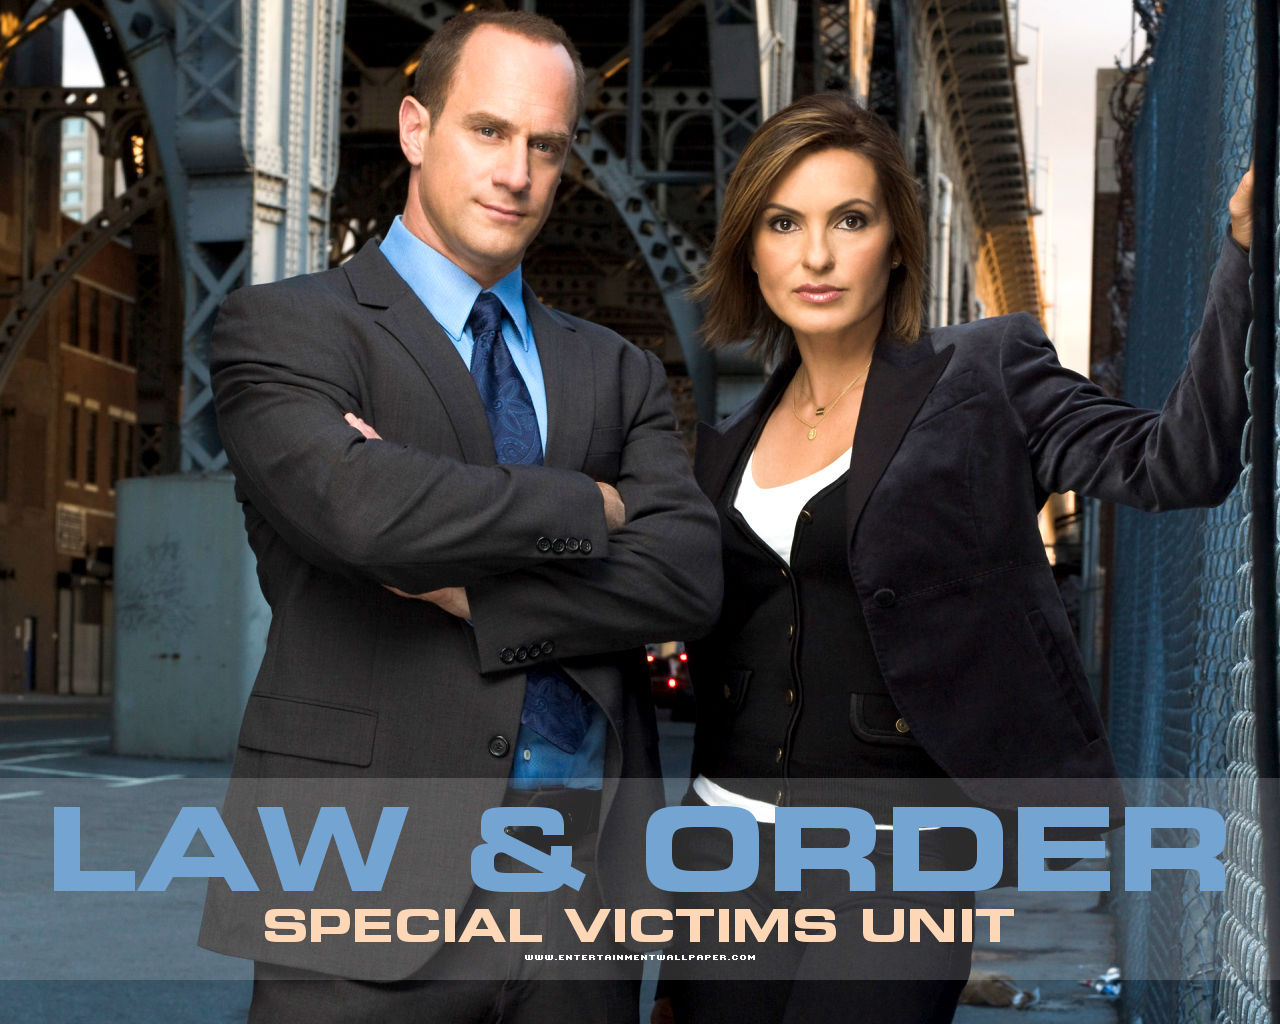 law and order special victims